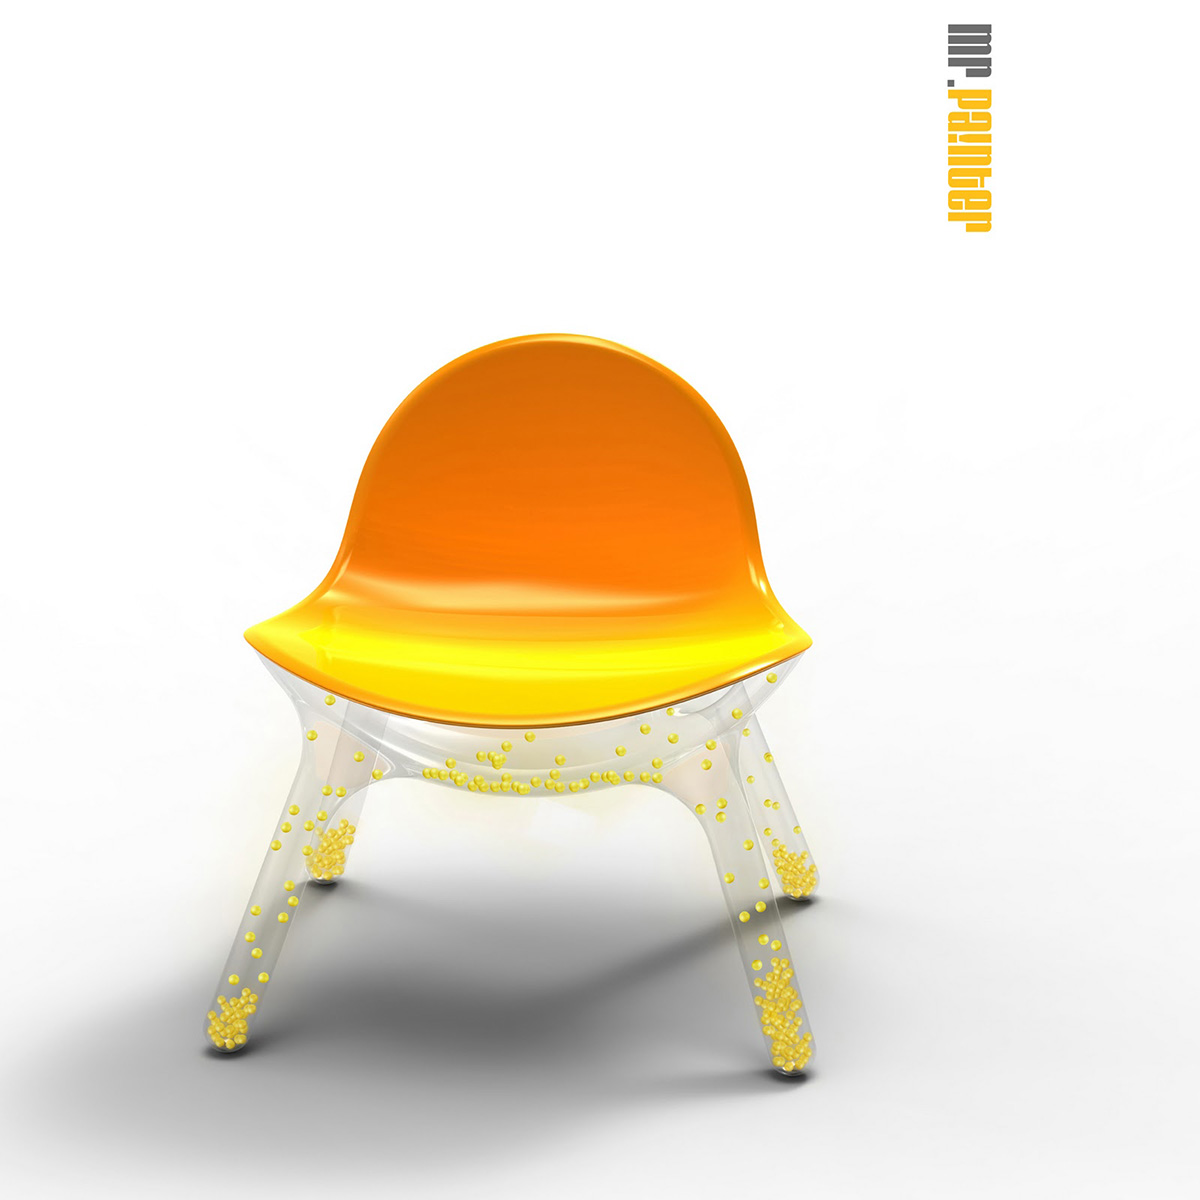 Mr Chair by designer Paul Sandip - 03